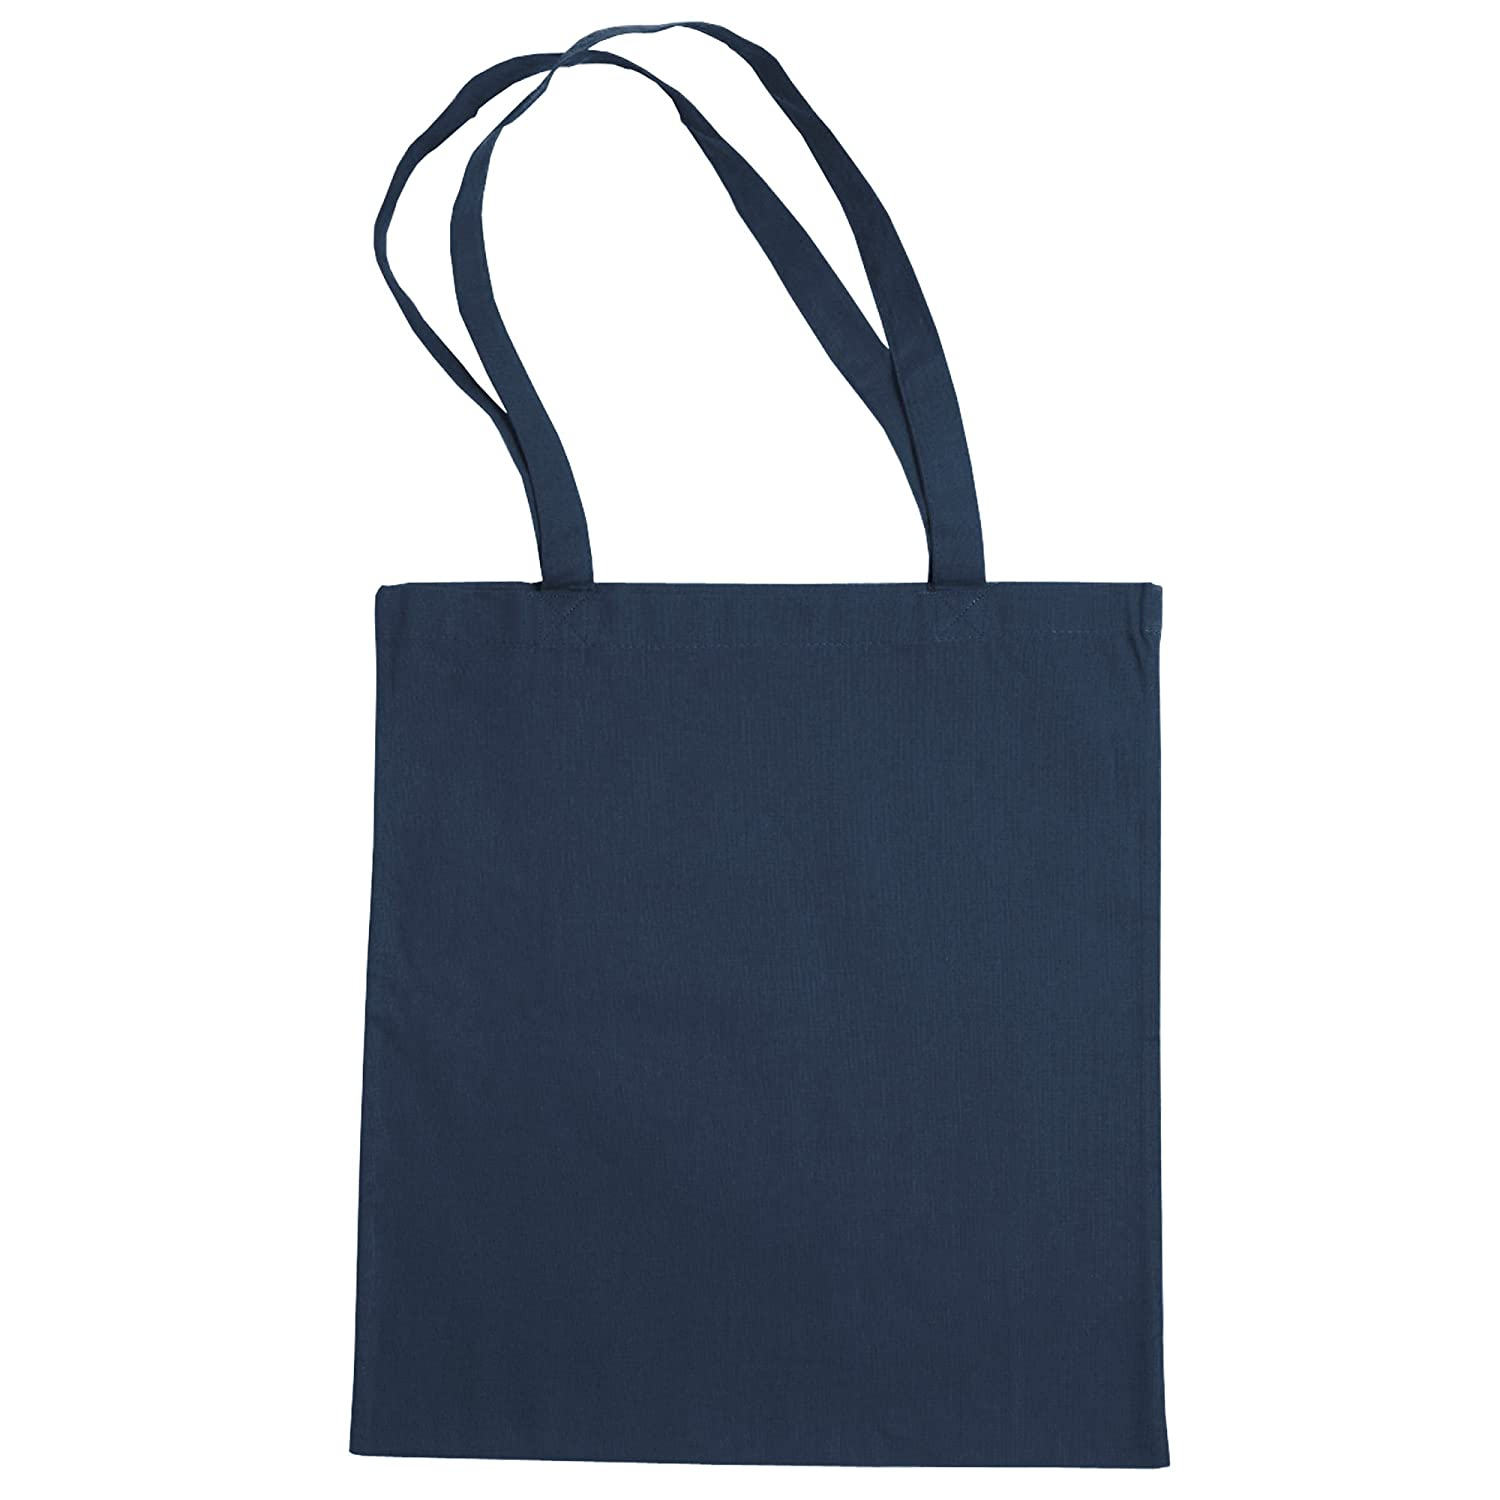 Jassz Bags'Beech' Cotton Large Handle Shopping Bag/Tote (One Size) (Petrol) Bags By Jassz UTBC2550_40